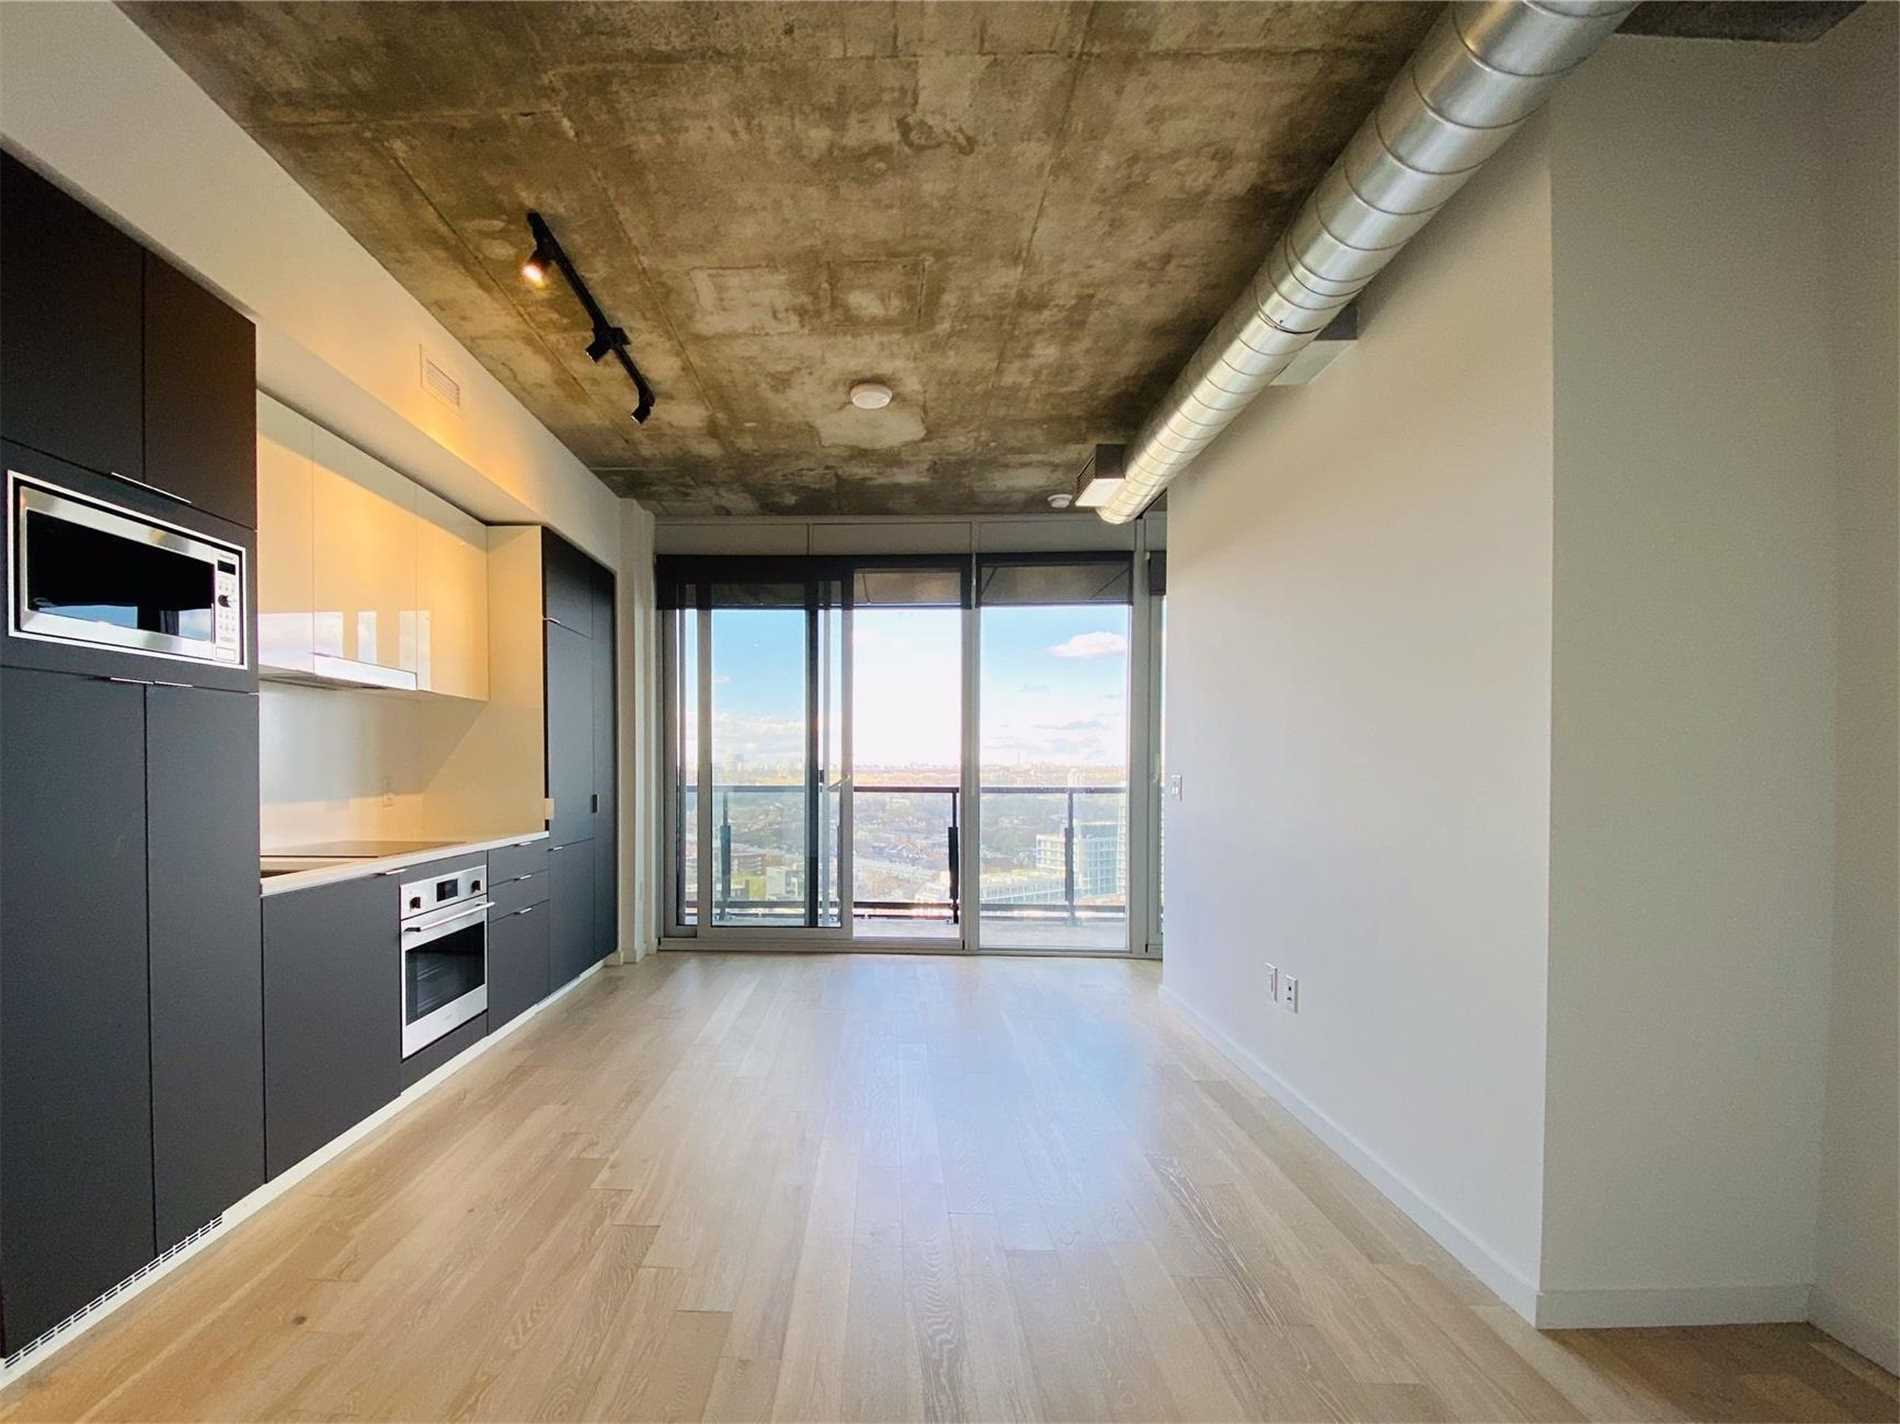 For Rent: 2405 - 170 Bayview Avenue, Toronto, ON | 1 Bed, 1 Bath Condo for $2050.00. See 31 photos!